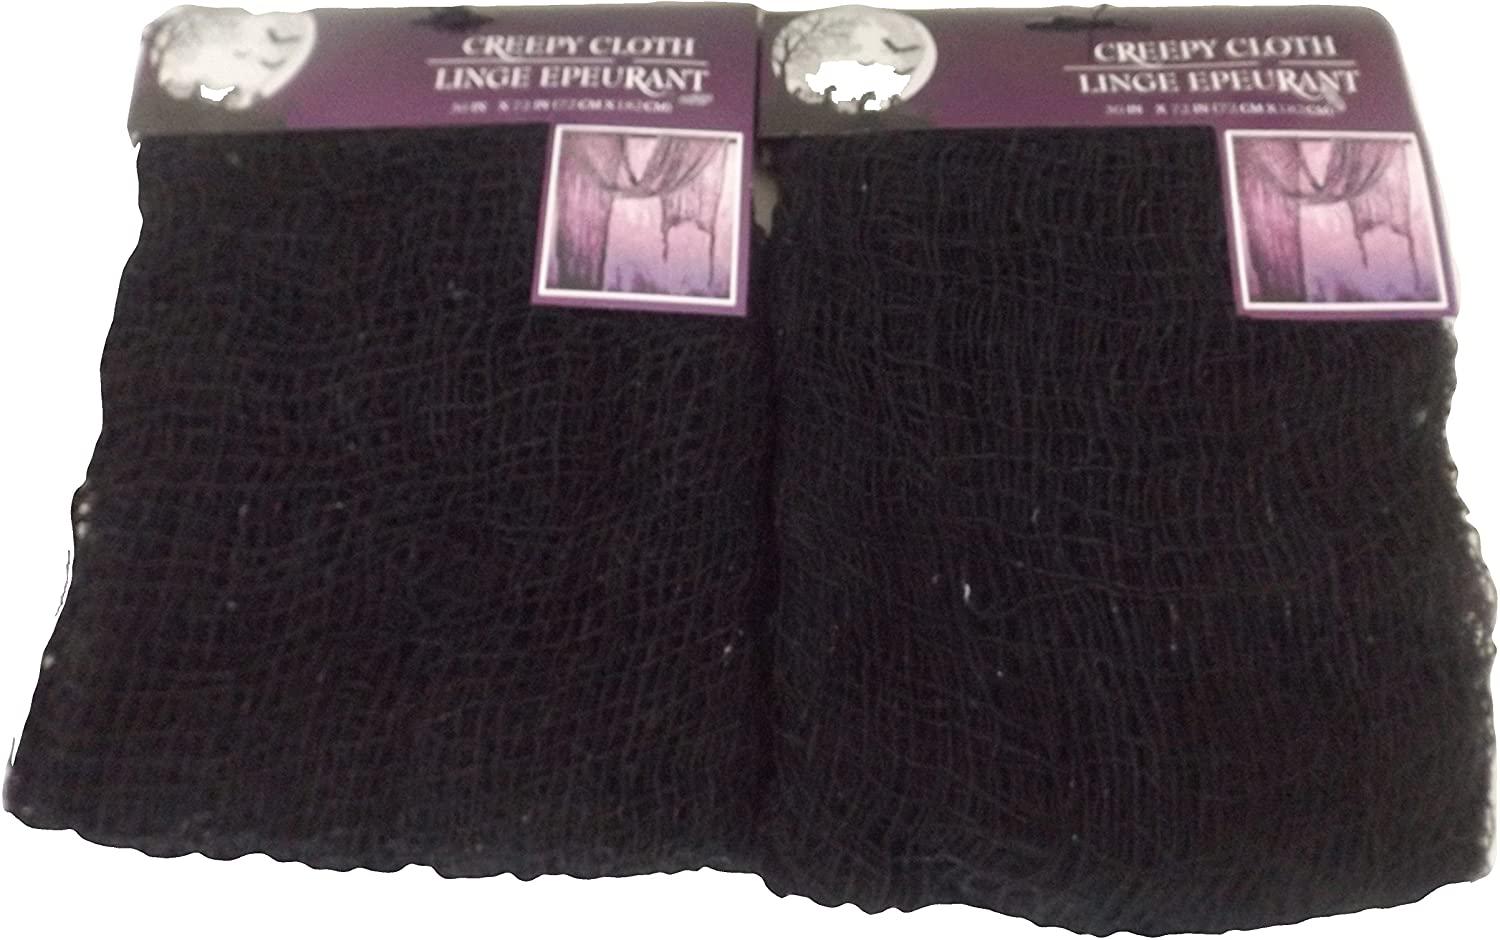 Creepy Cloth Halloween Decoration Black - 2 Pack